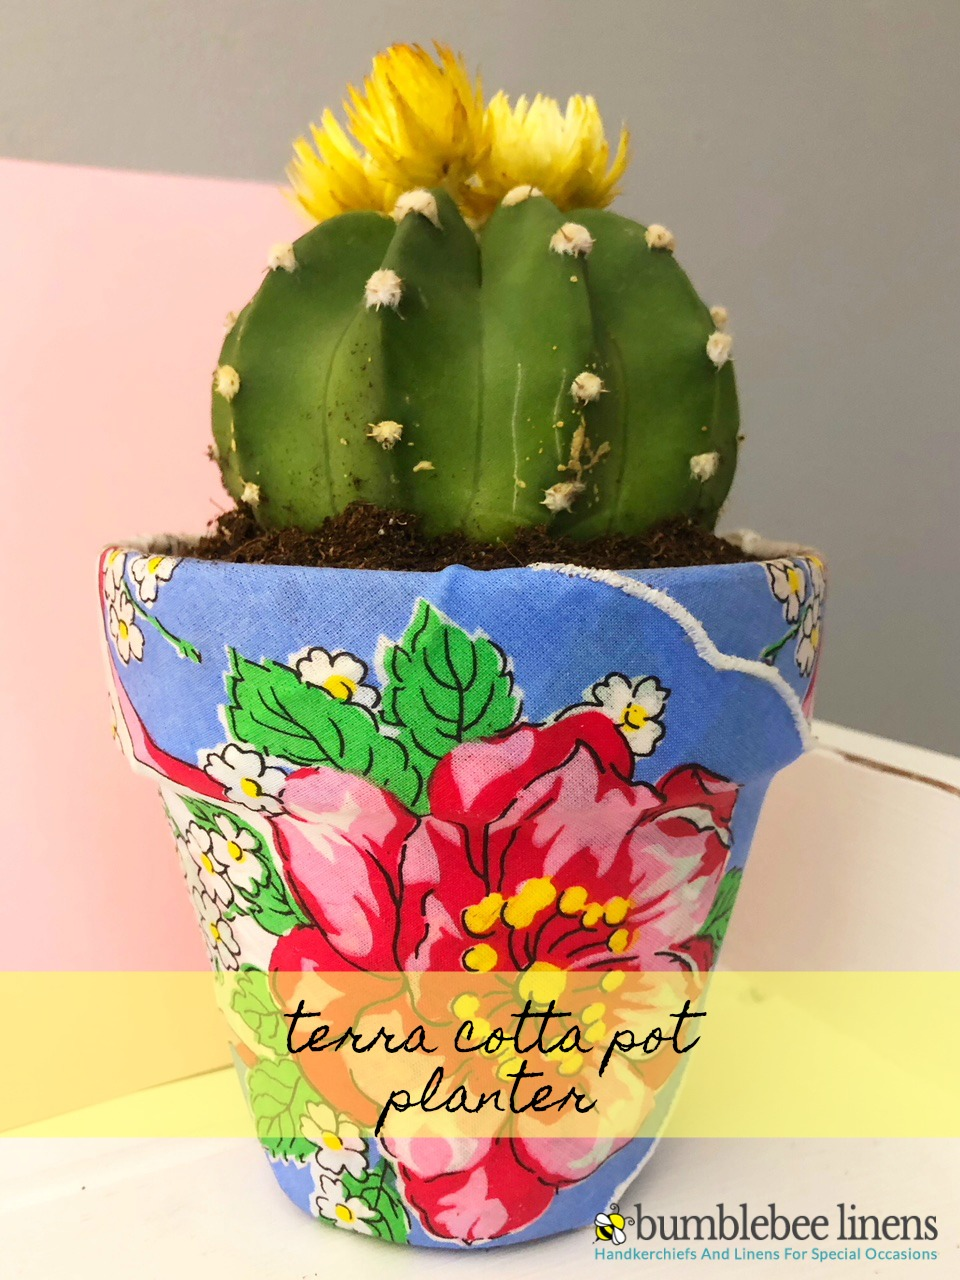 Our Terra Cotta Pot Planter is a easy and beautiful way to spruce up a terra cotta pot with a little Mod Podge and a handkerchief.